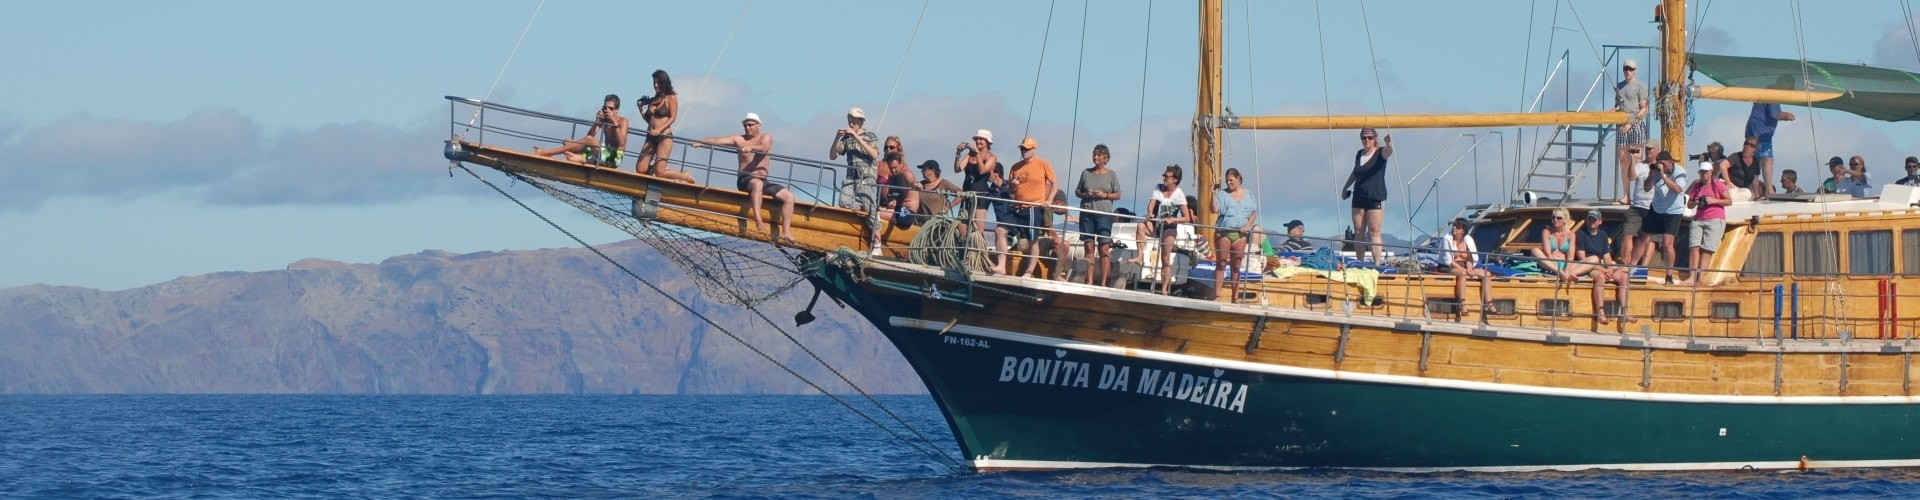 Boat Trips in Madeira Island